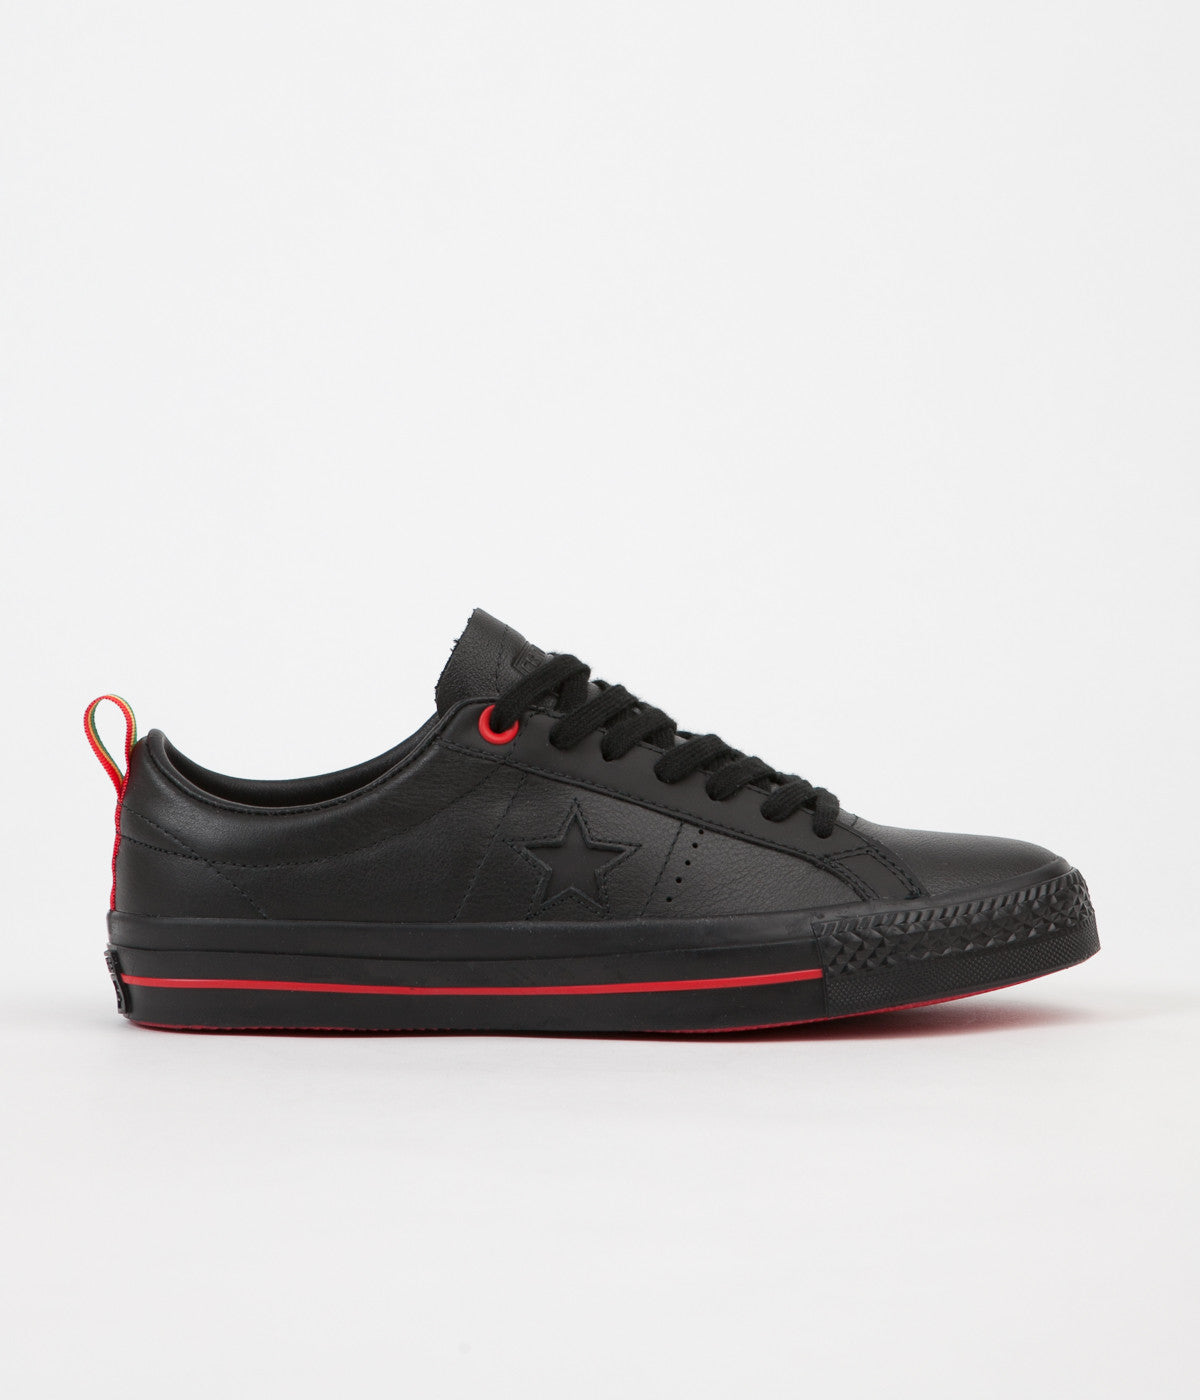 Converse One Star Pro Ox Eli Reed Shoes - Black / Black / White